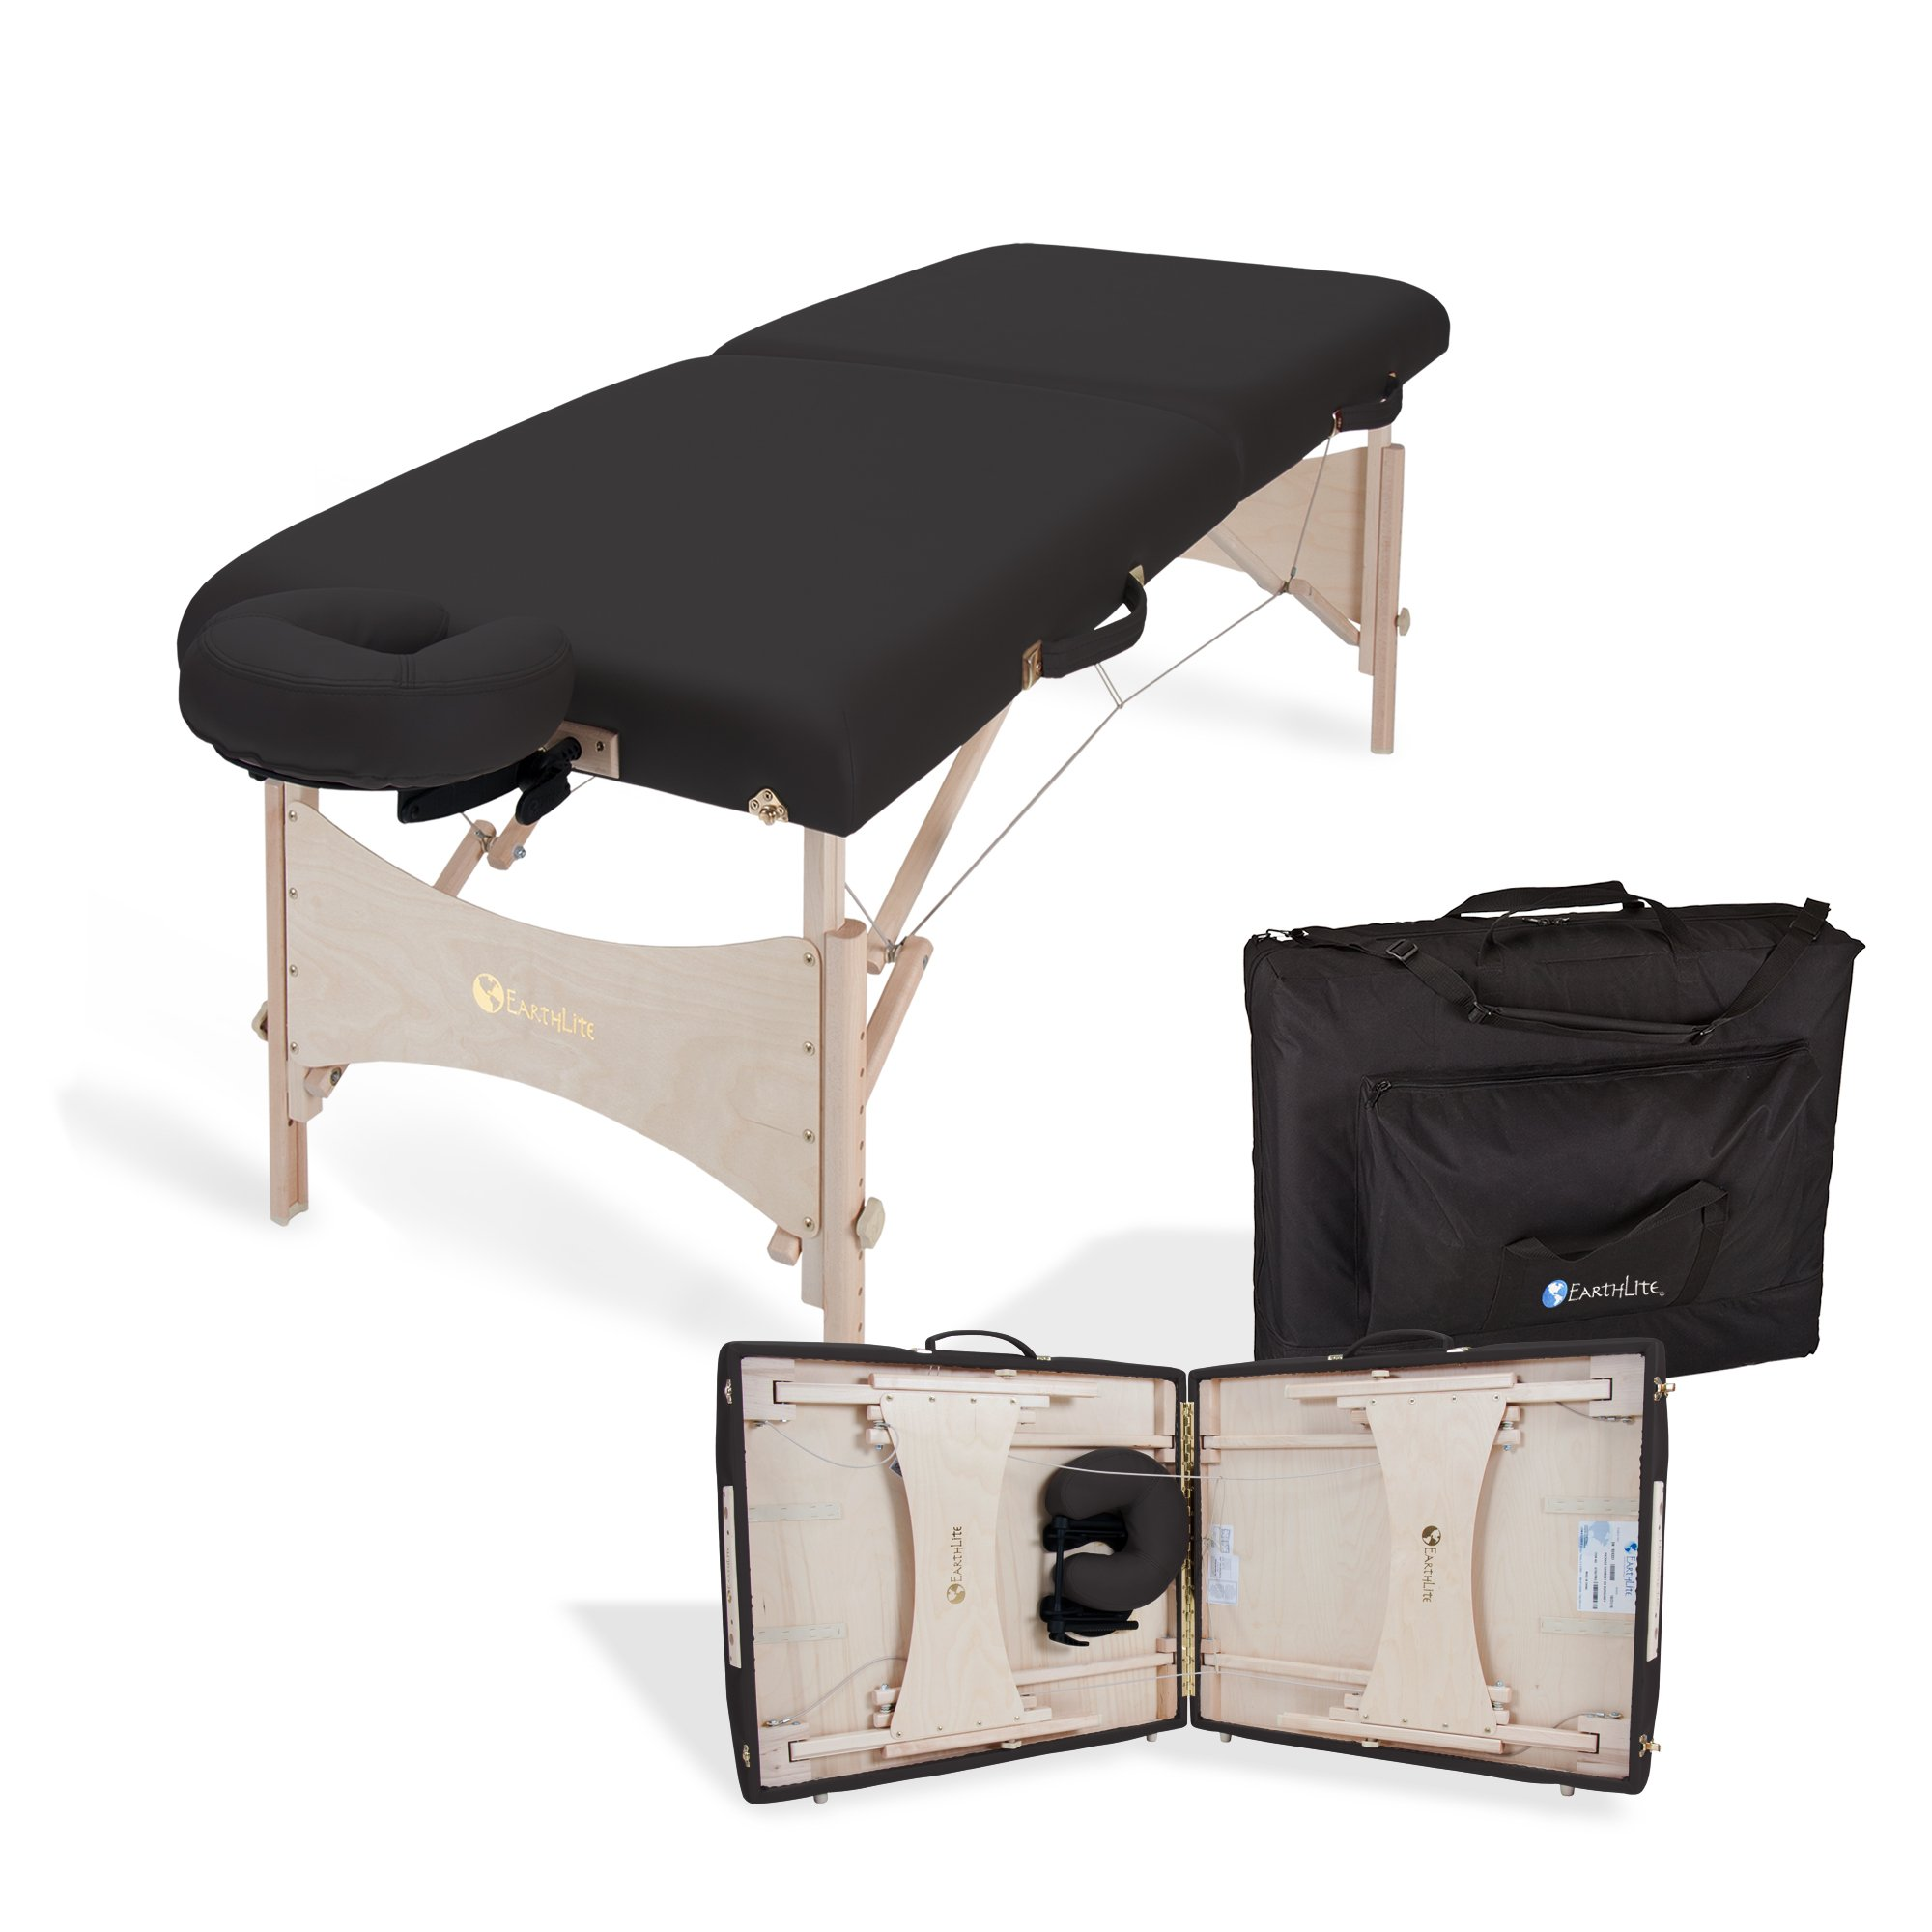 EARTHLITE Harmony DX Portable Massage Table Package – Eco-Friendly Design, Deluxe Adjustable Headrest, Hard Maple, Aircraft Quality, up to 600 lbs by Earthlite (Image #1)